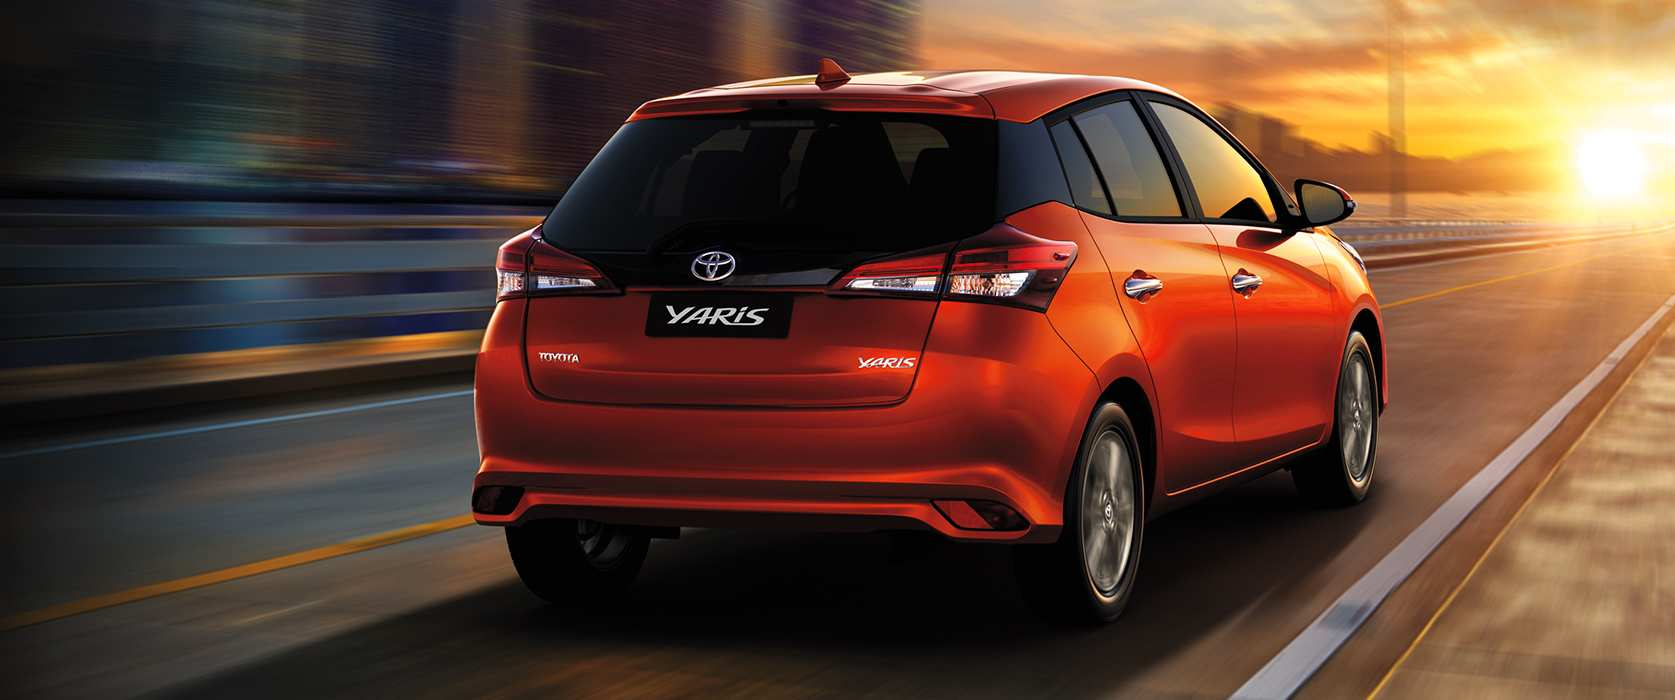 73 Best Review Yaris 2020 Mazda 2 Overview for Yaris 2020 Mazda 2